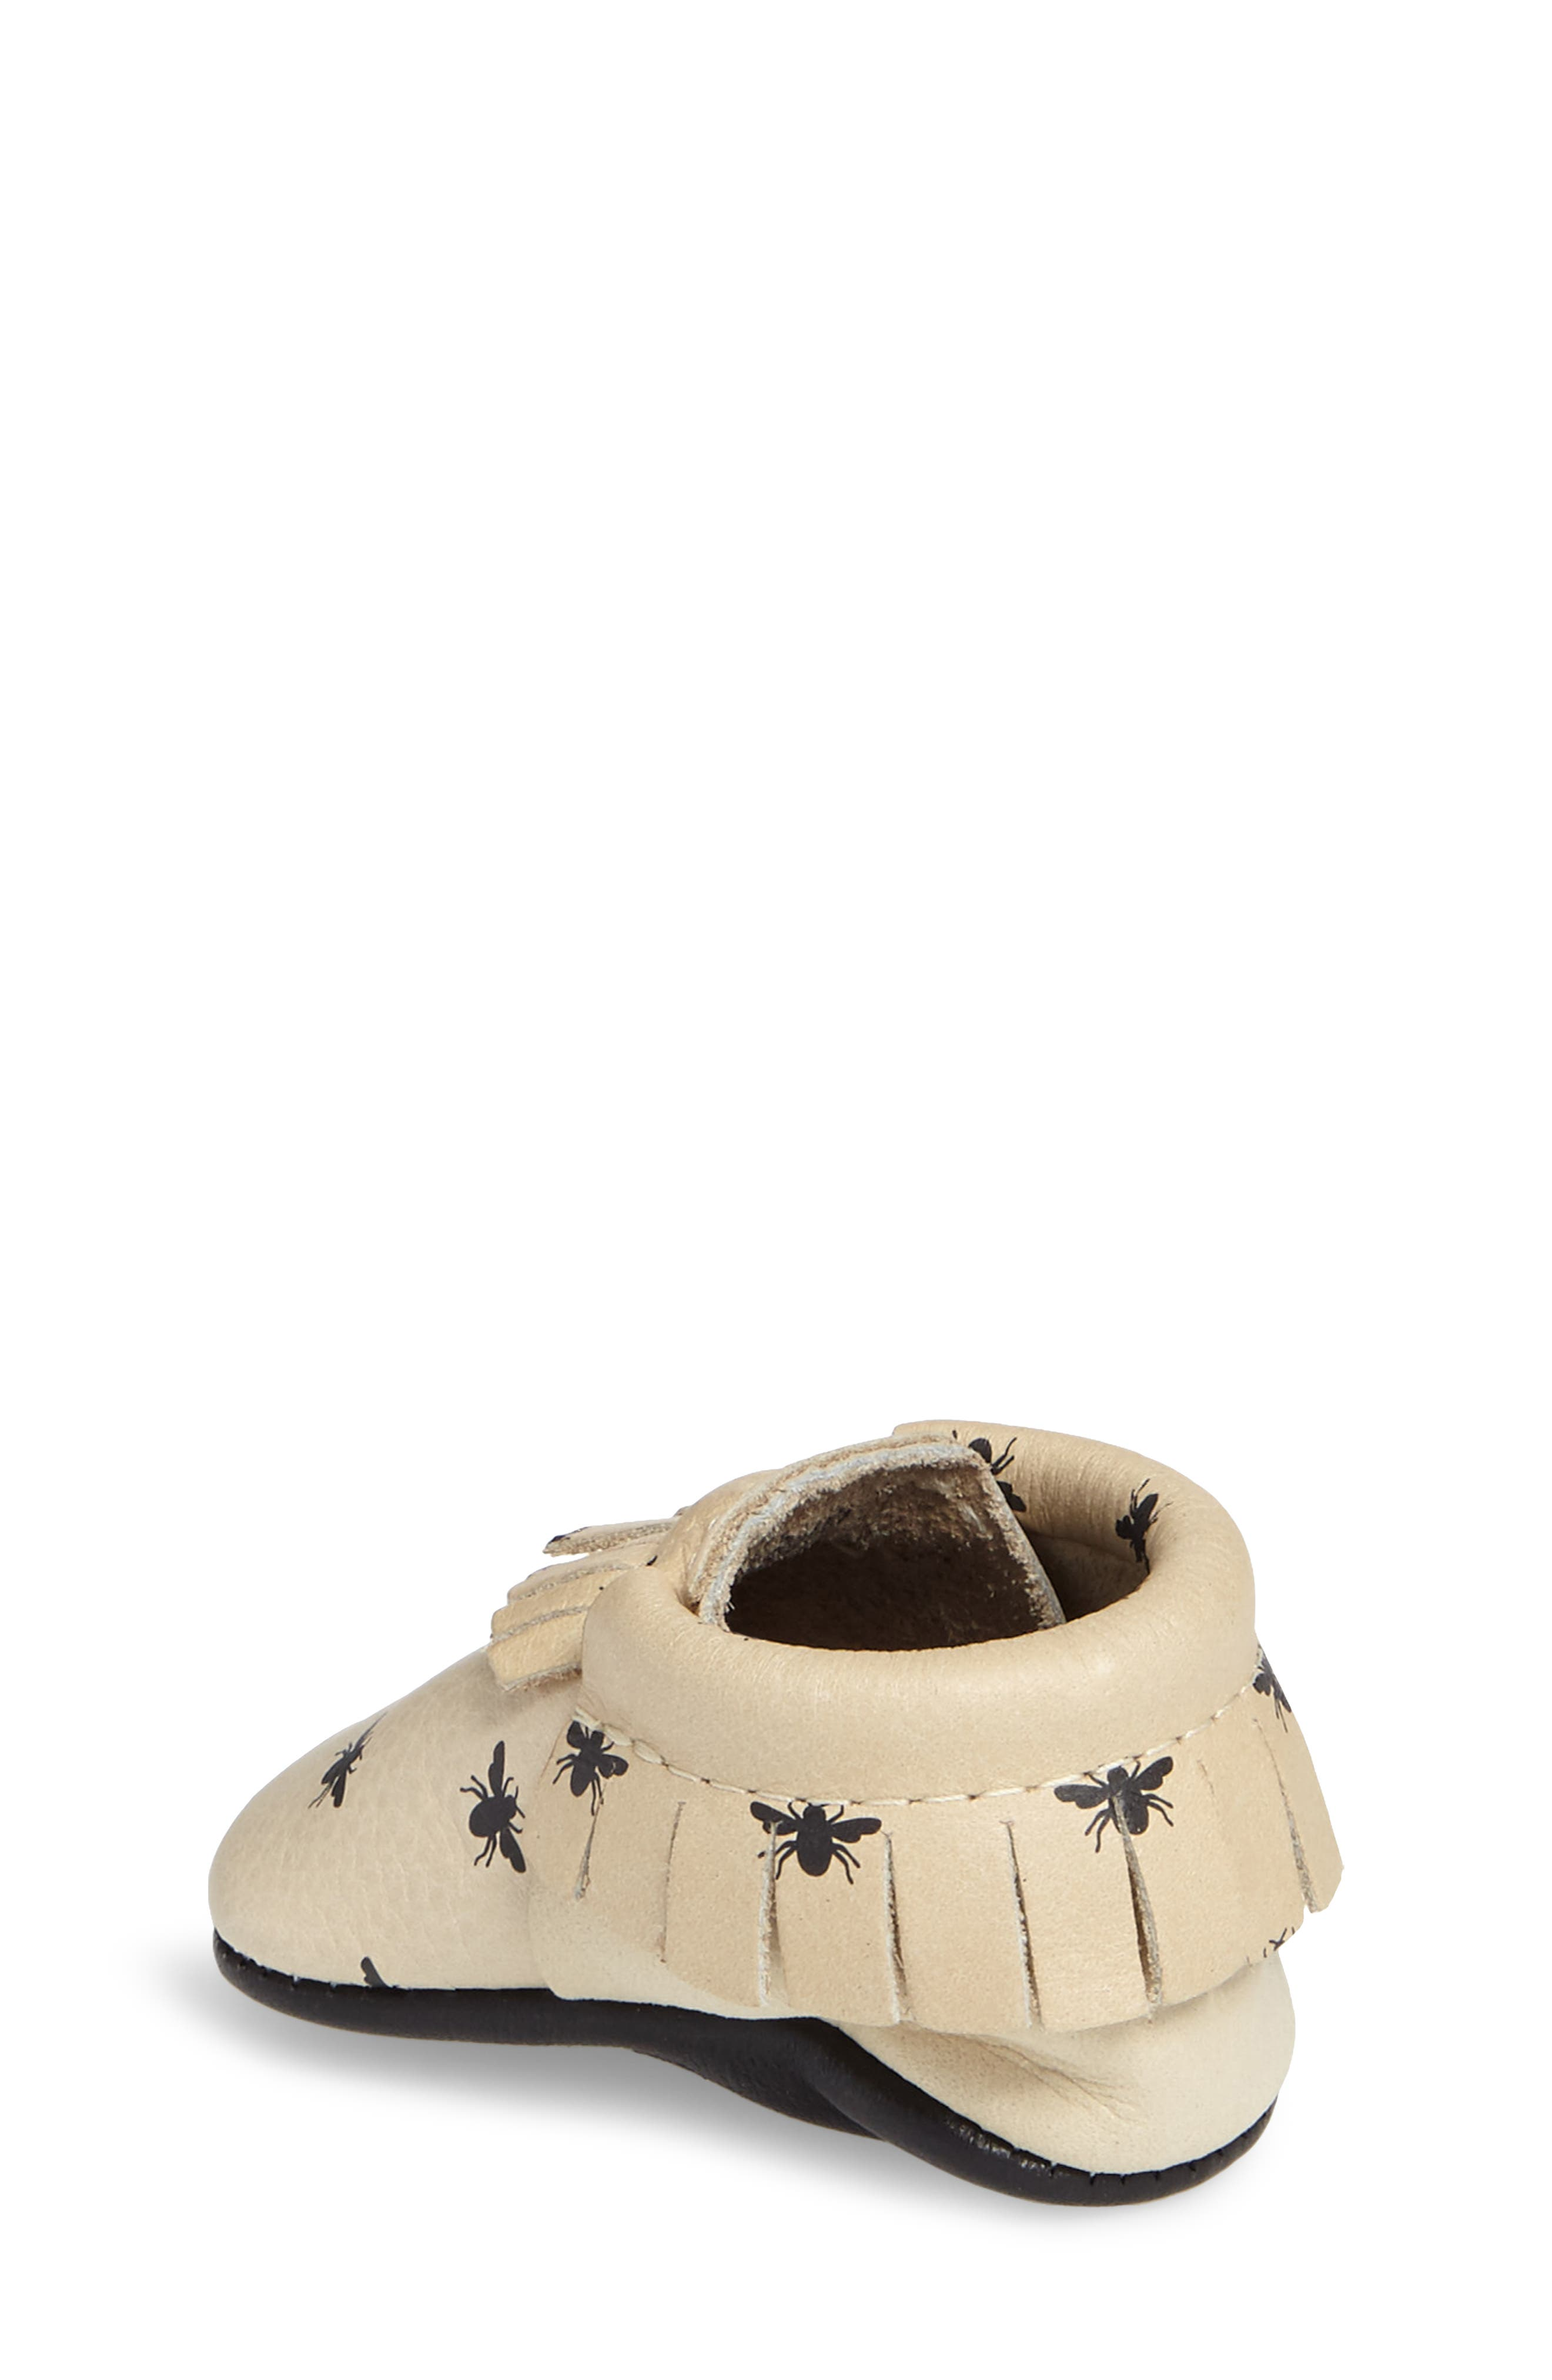 Honeybee Print Moccasin,                             Alternate thumbnail 2, color,                             250